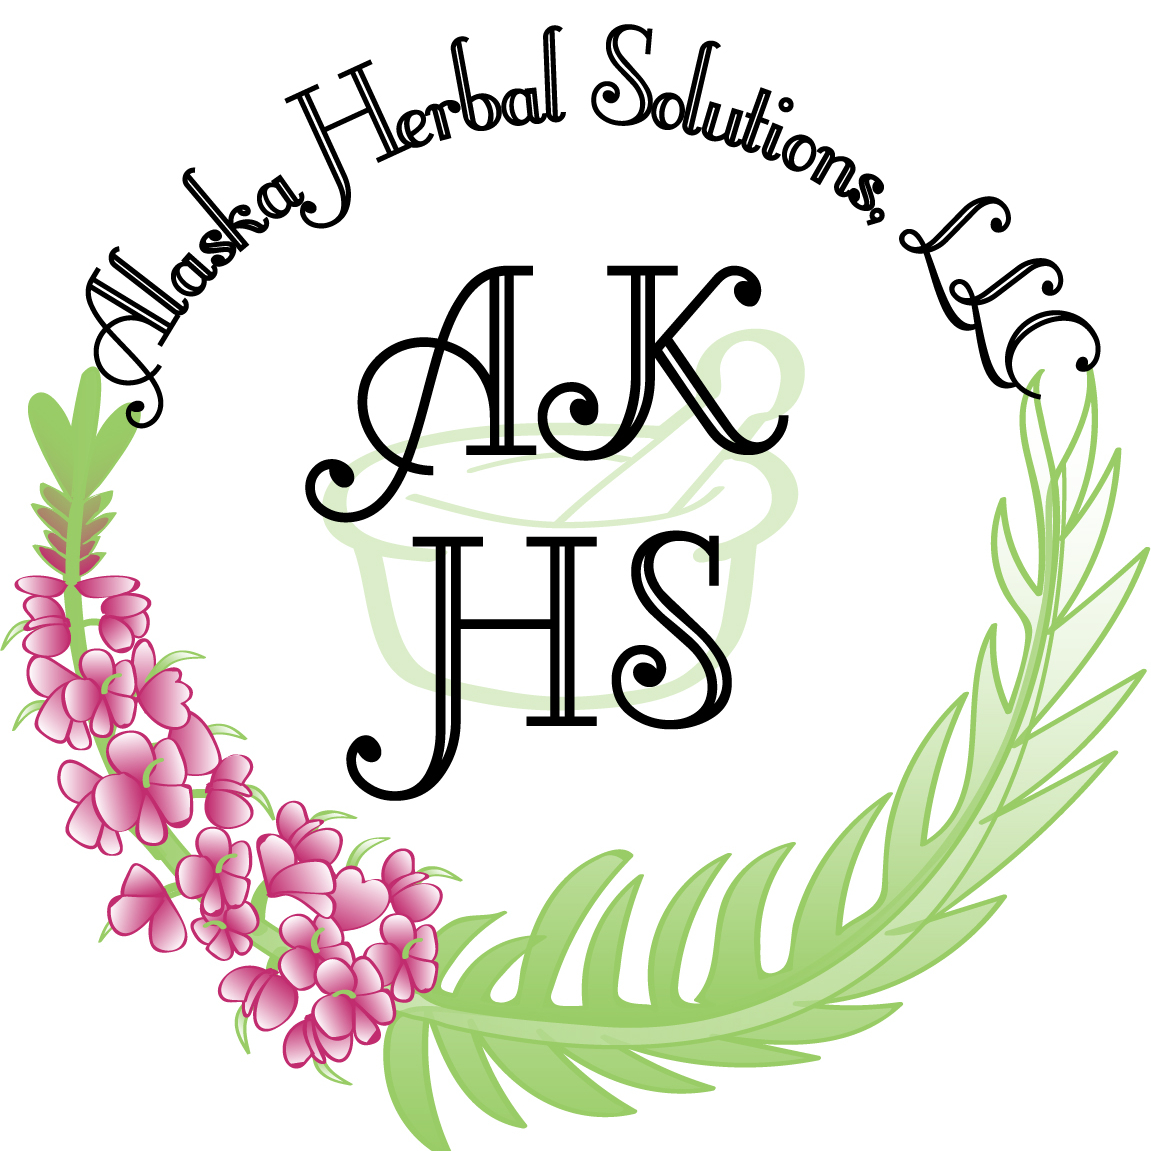 Alaska Herbal Solutions, LLC